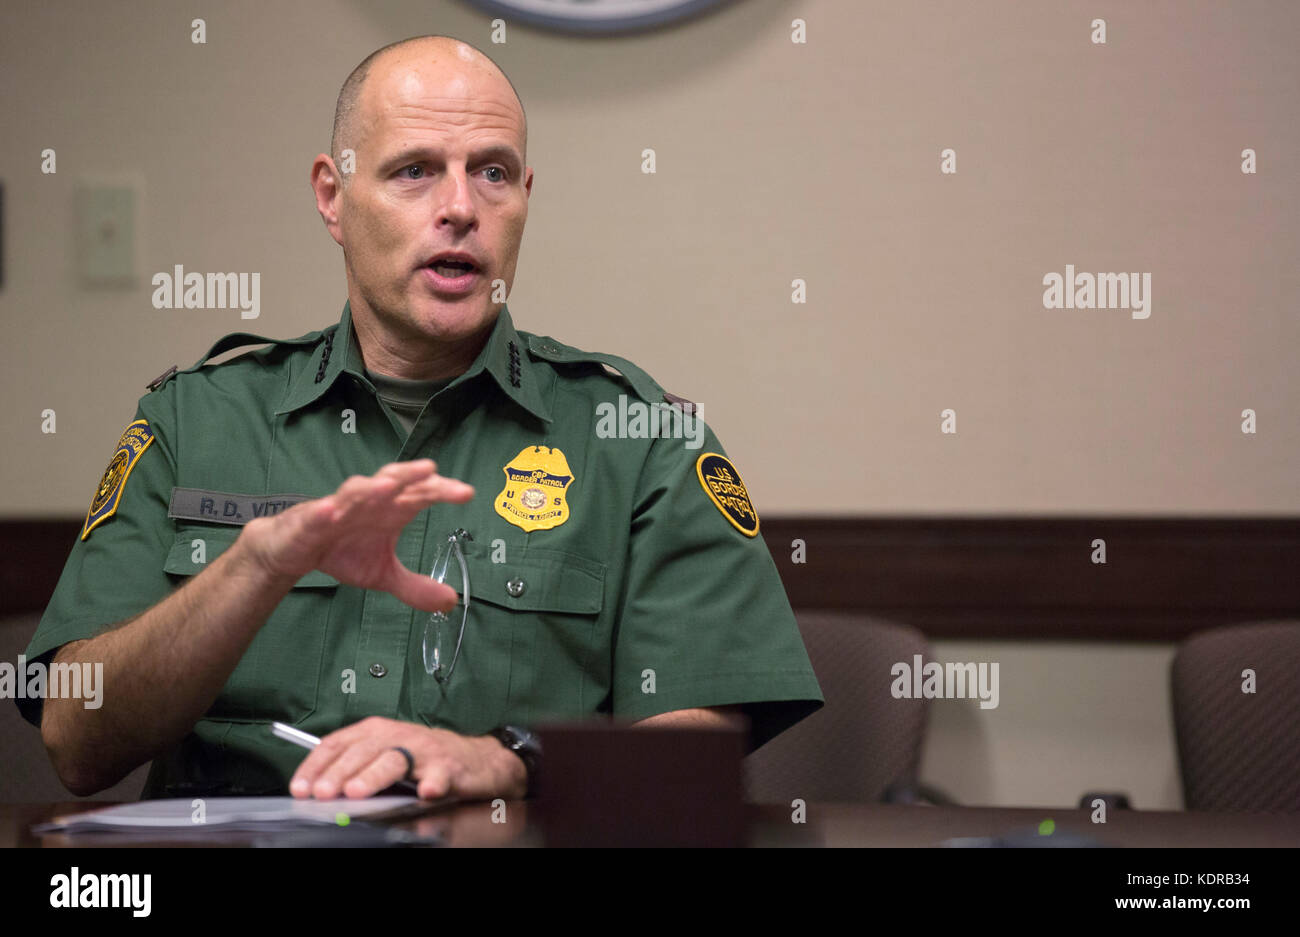 U.S. Customs and Border Protection Acting Deputy Commissioner Ronald Vitiello discusses border security with American - Stock Image